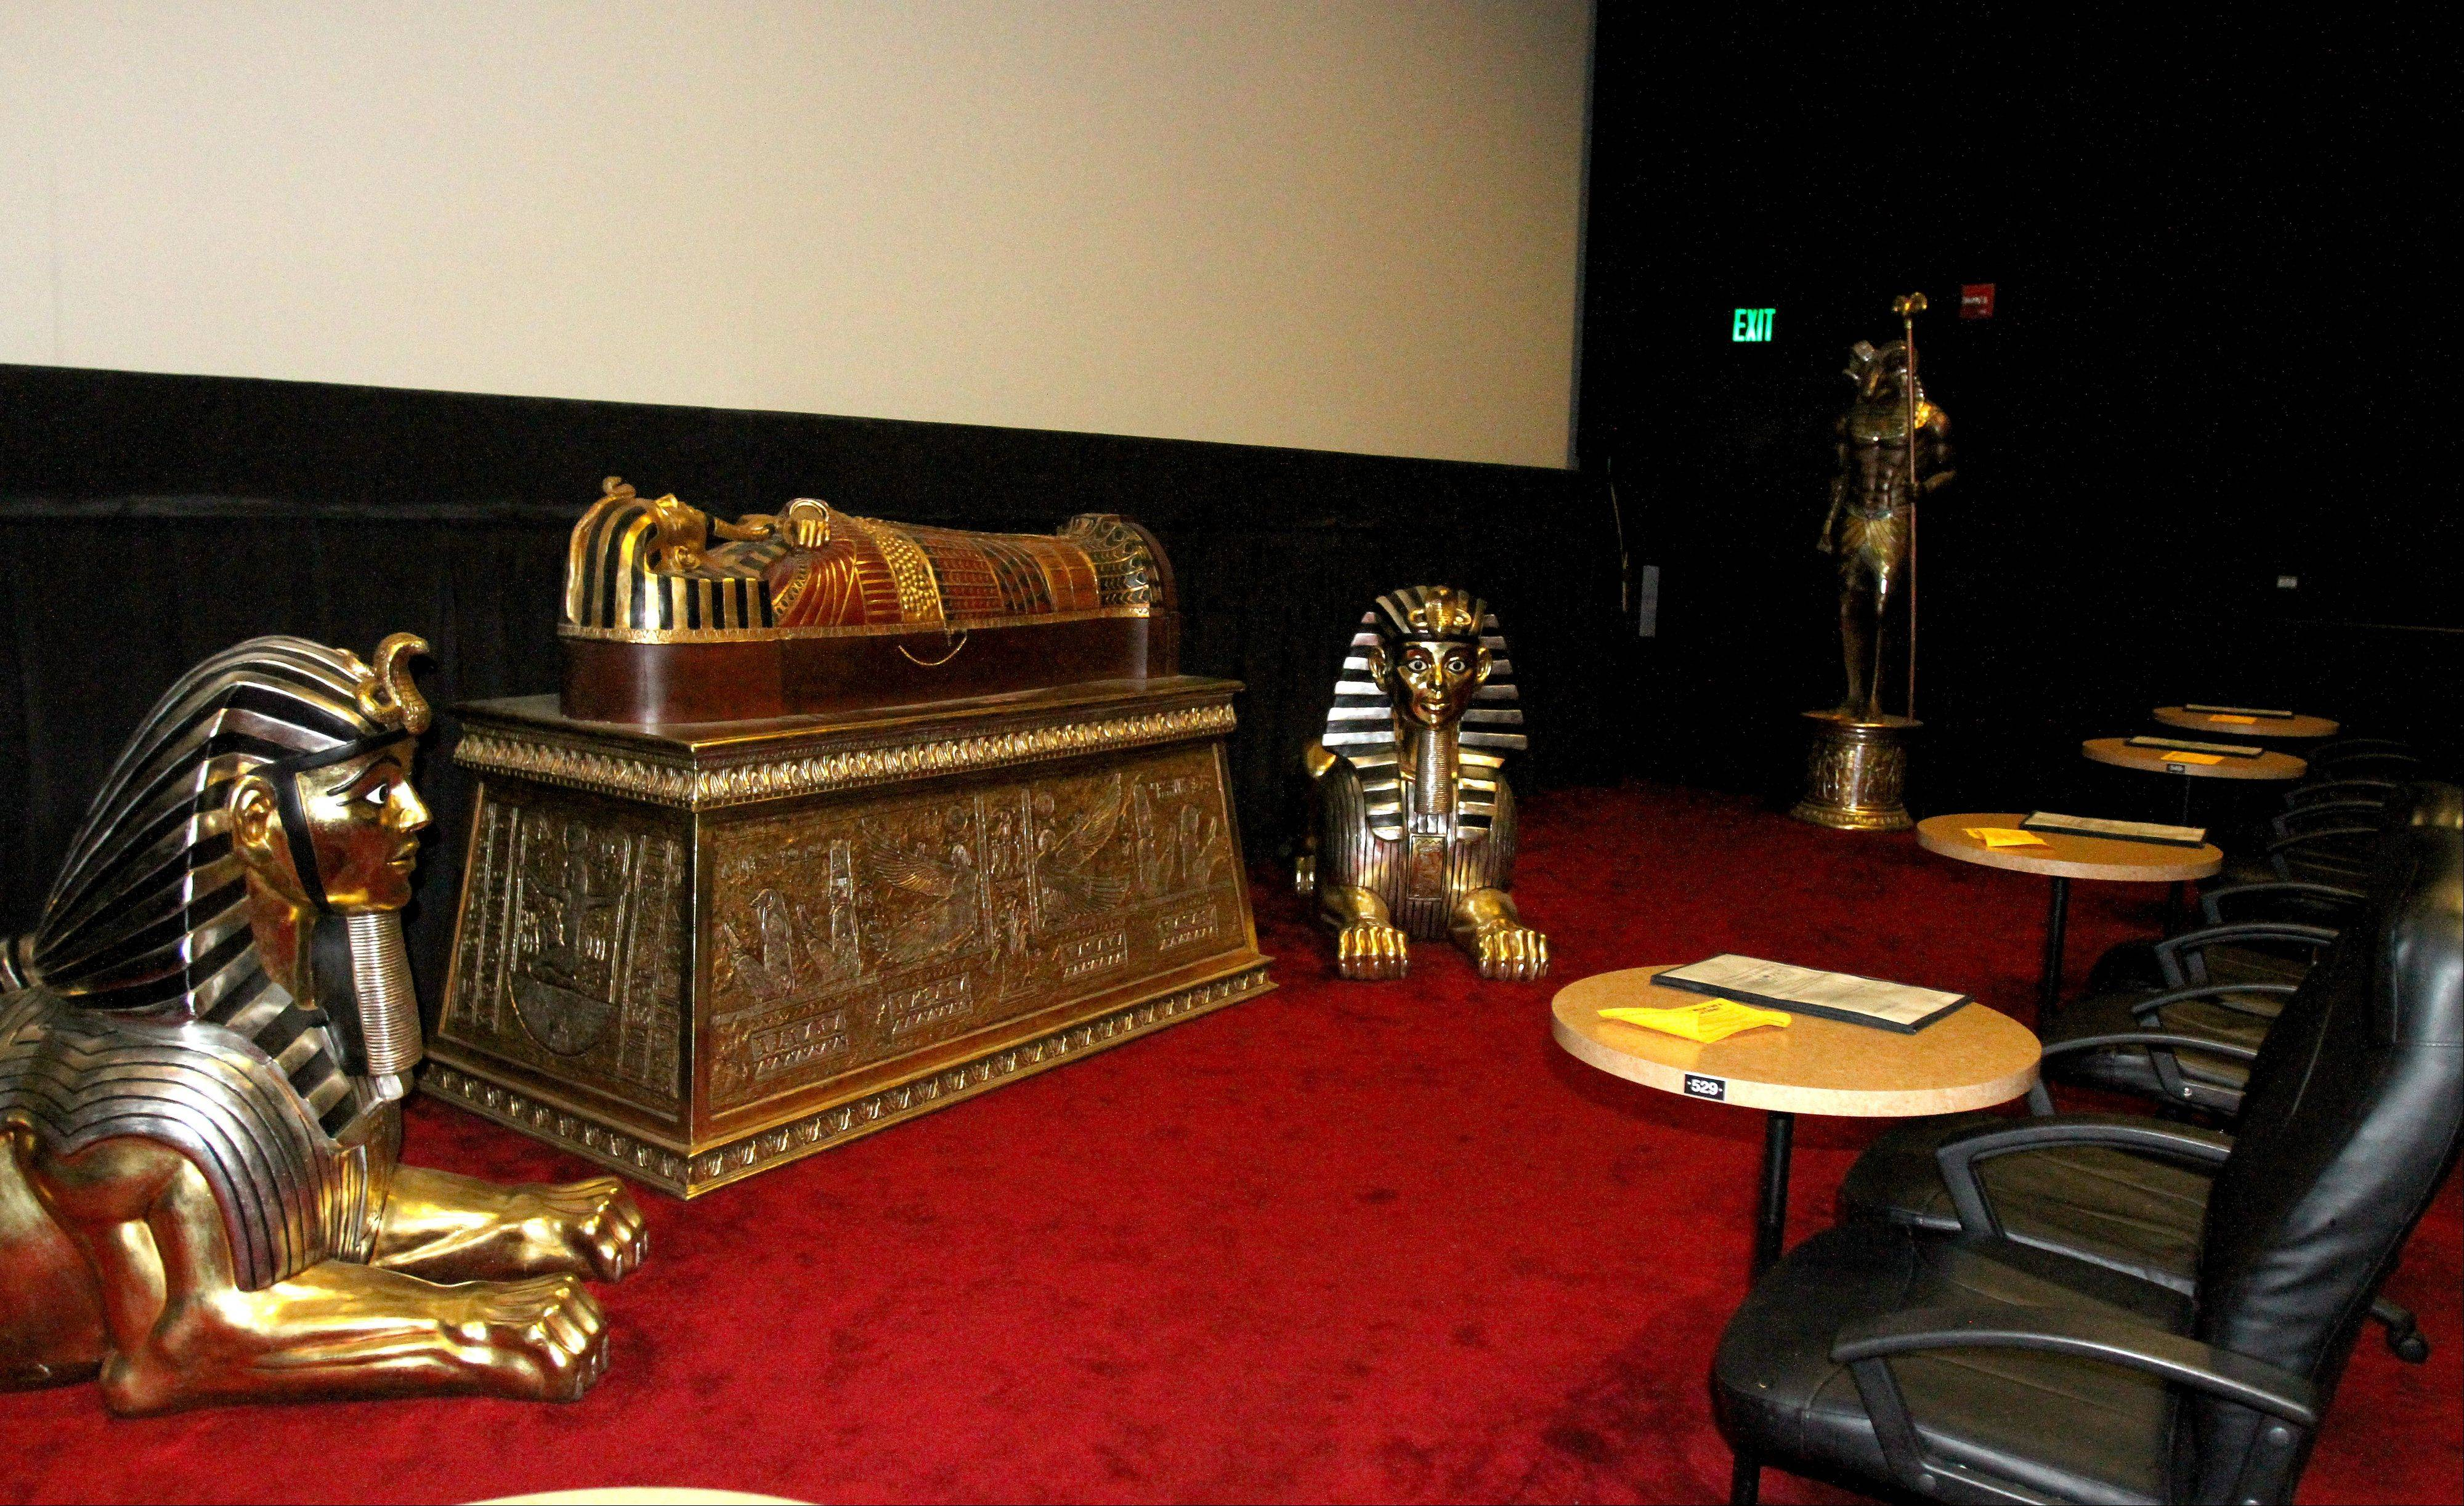 One theater has an Egyptian theme at the Hollywood Palms Cinema in Naperville.